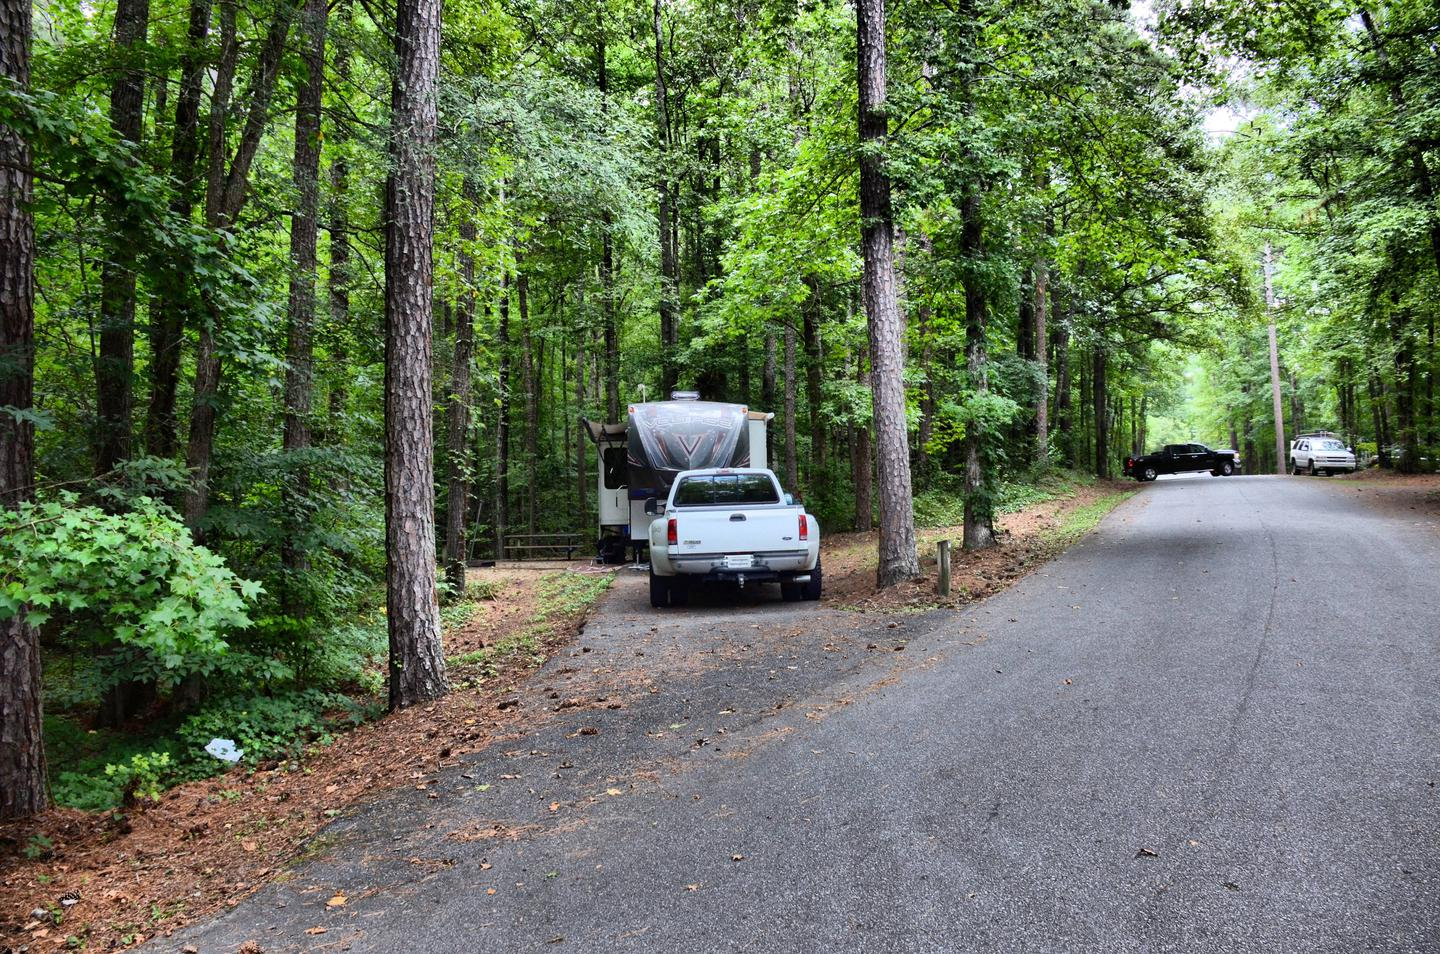 Awning-side clearance, driveway slope.Payne Campground, campsite 55.